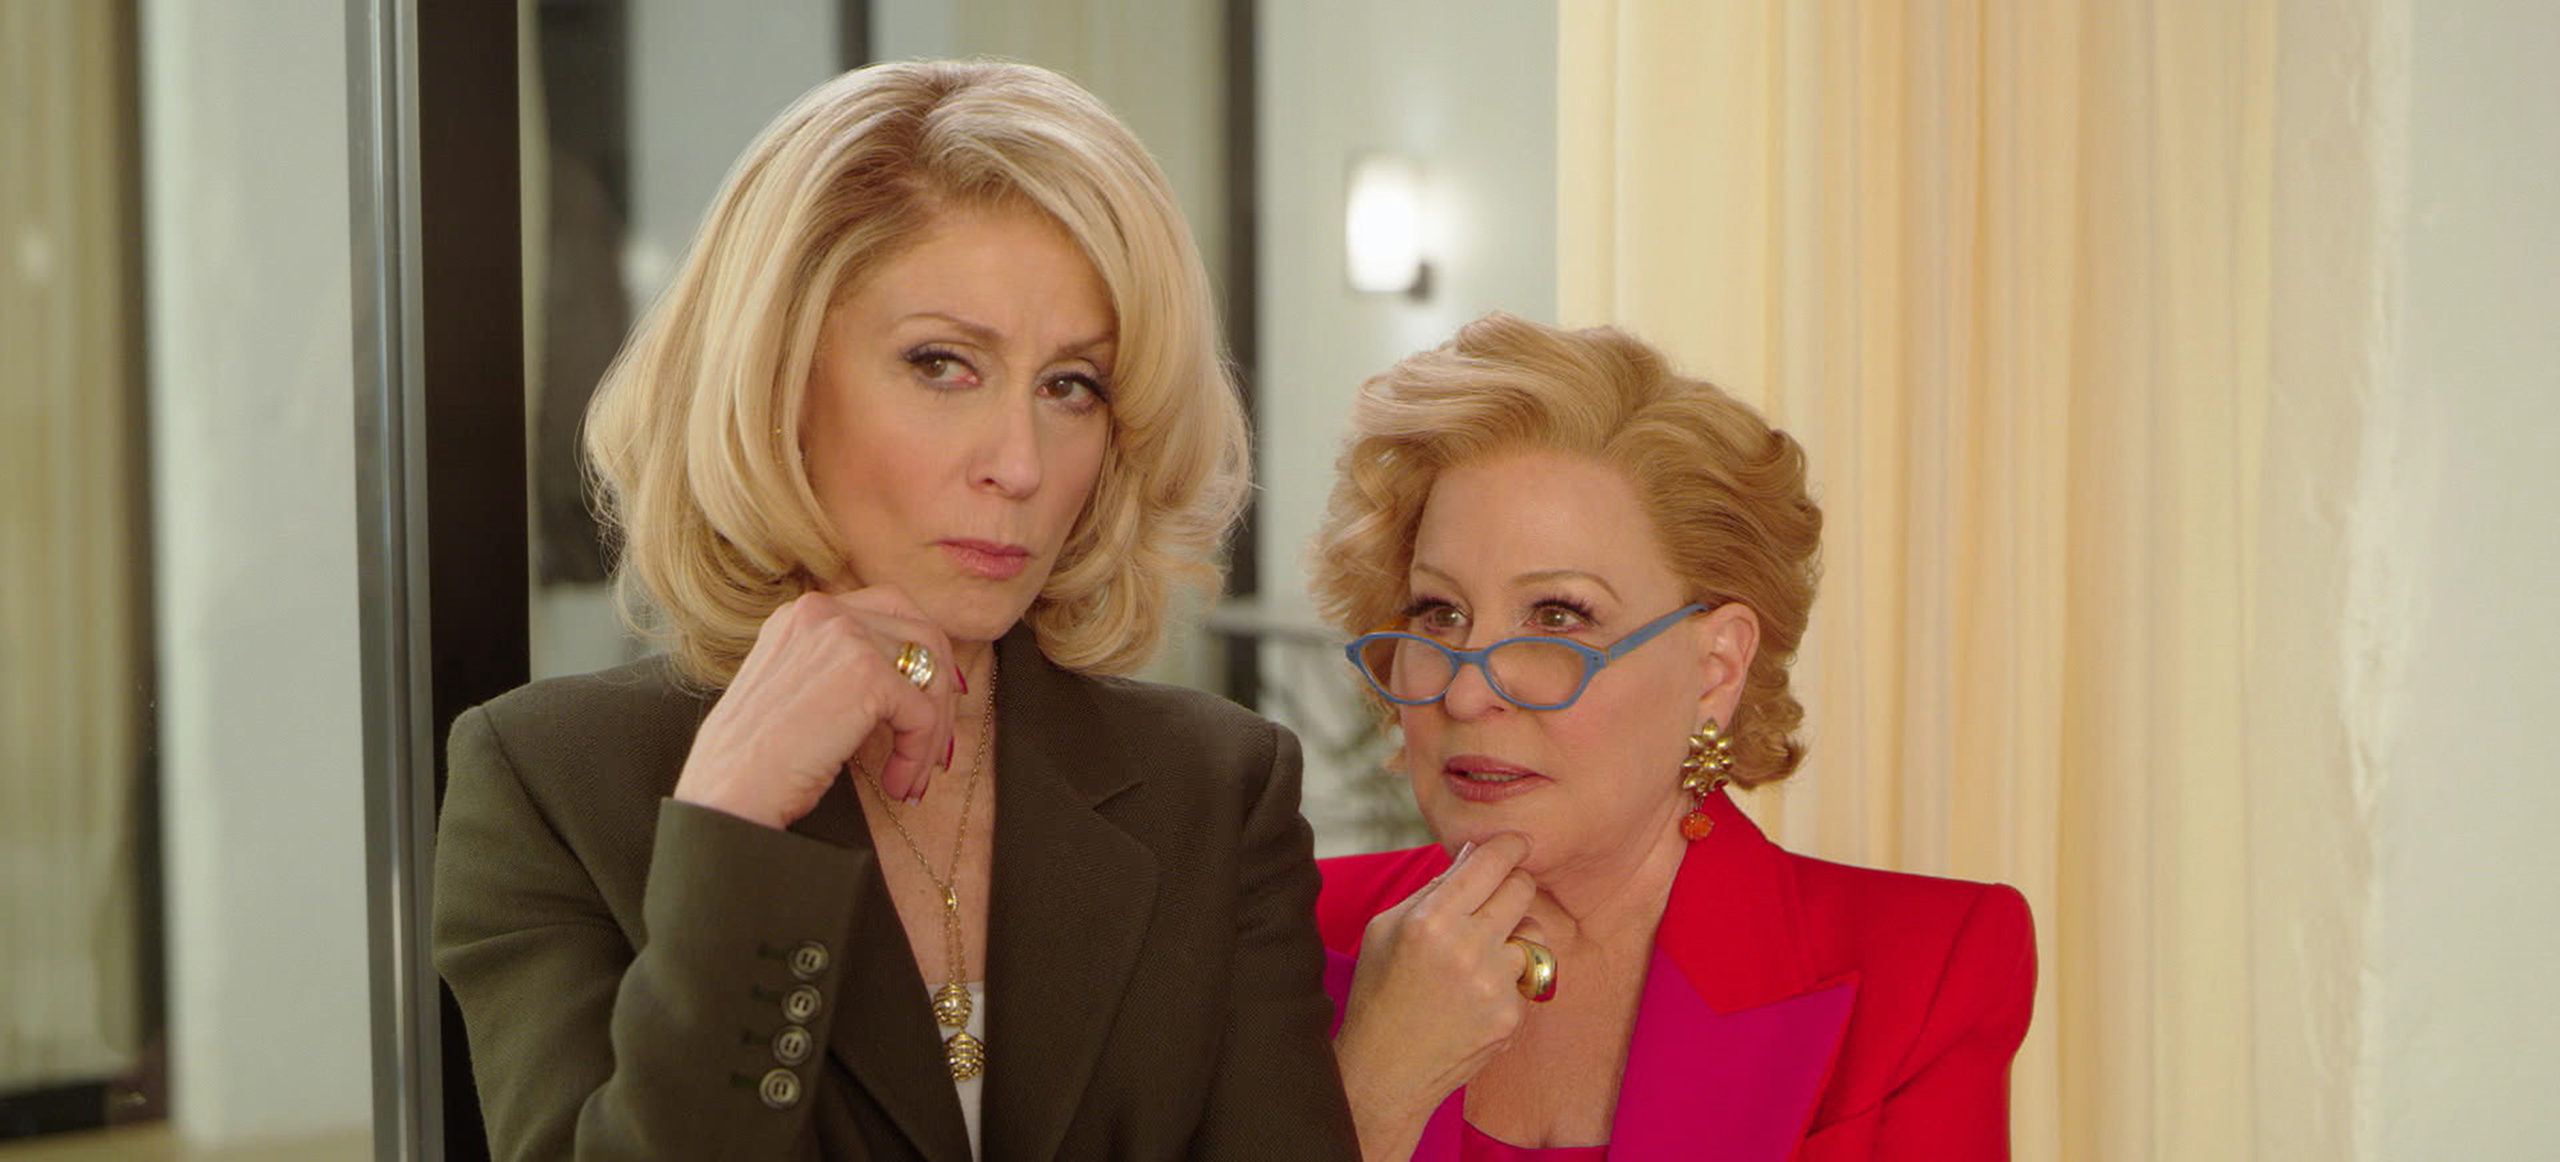 Judith Light and Bette Midler in The Politician